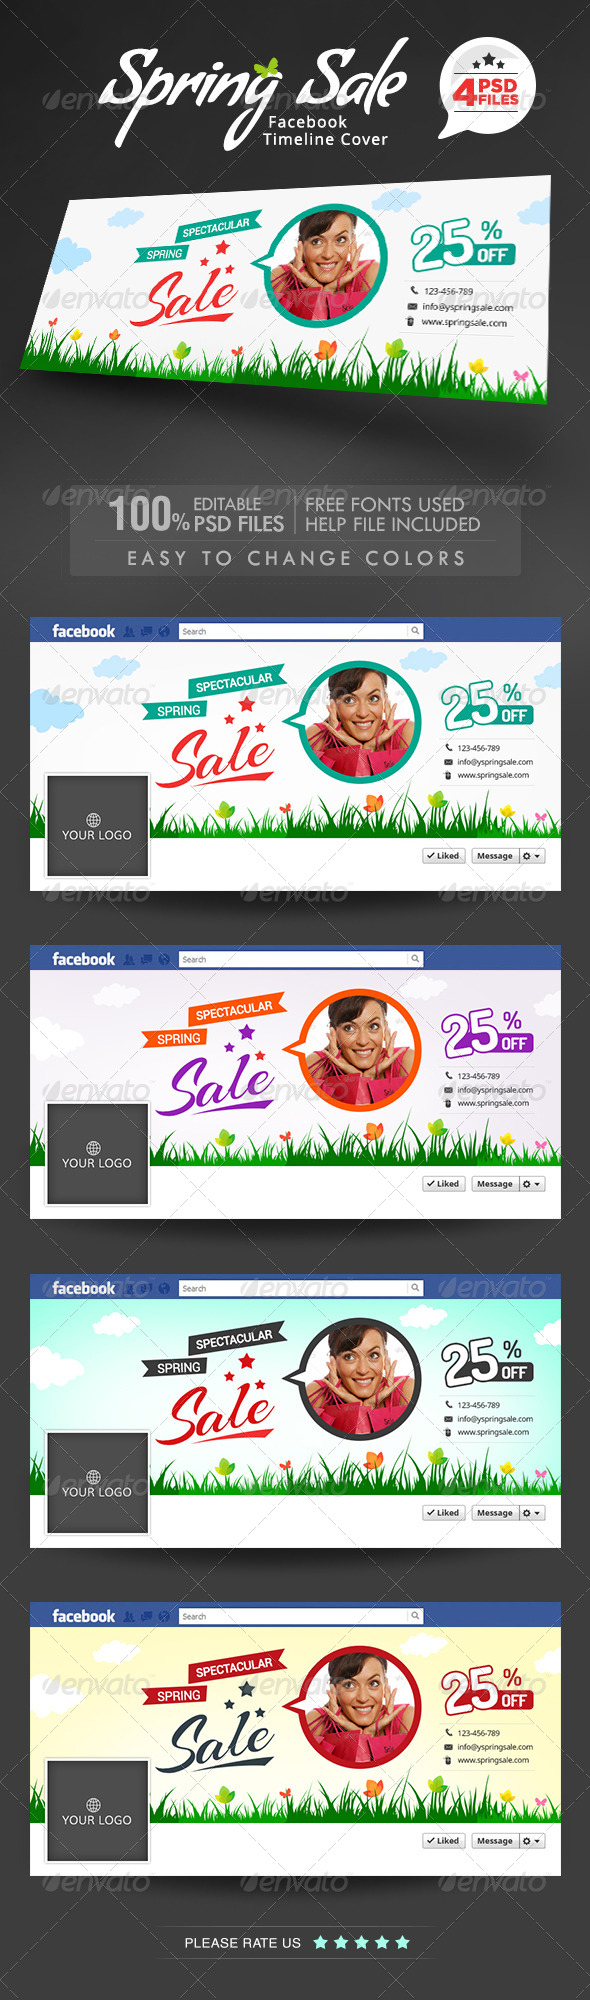 GraphicRiver Spring Sale Facebook Cover 7405998